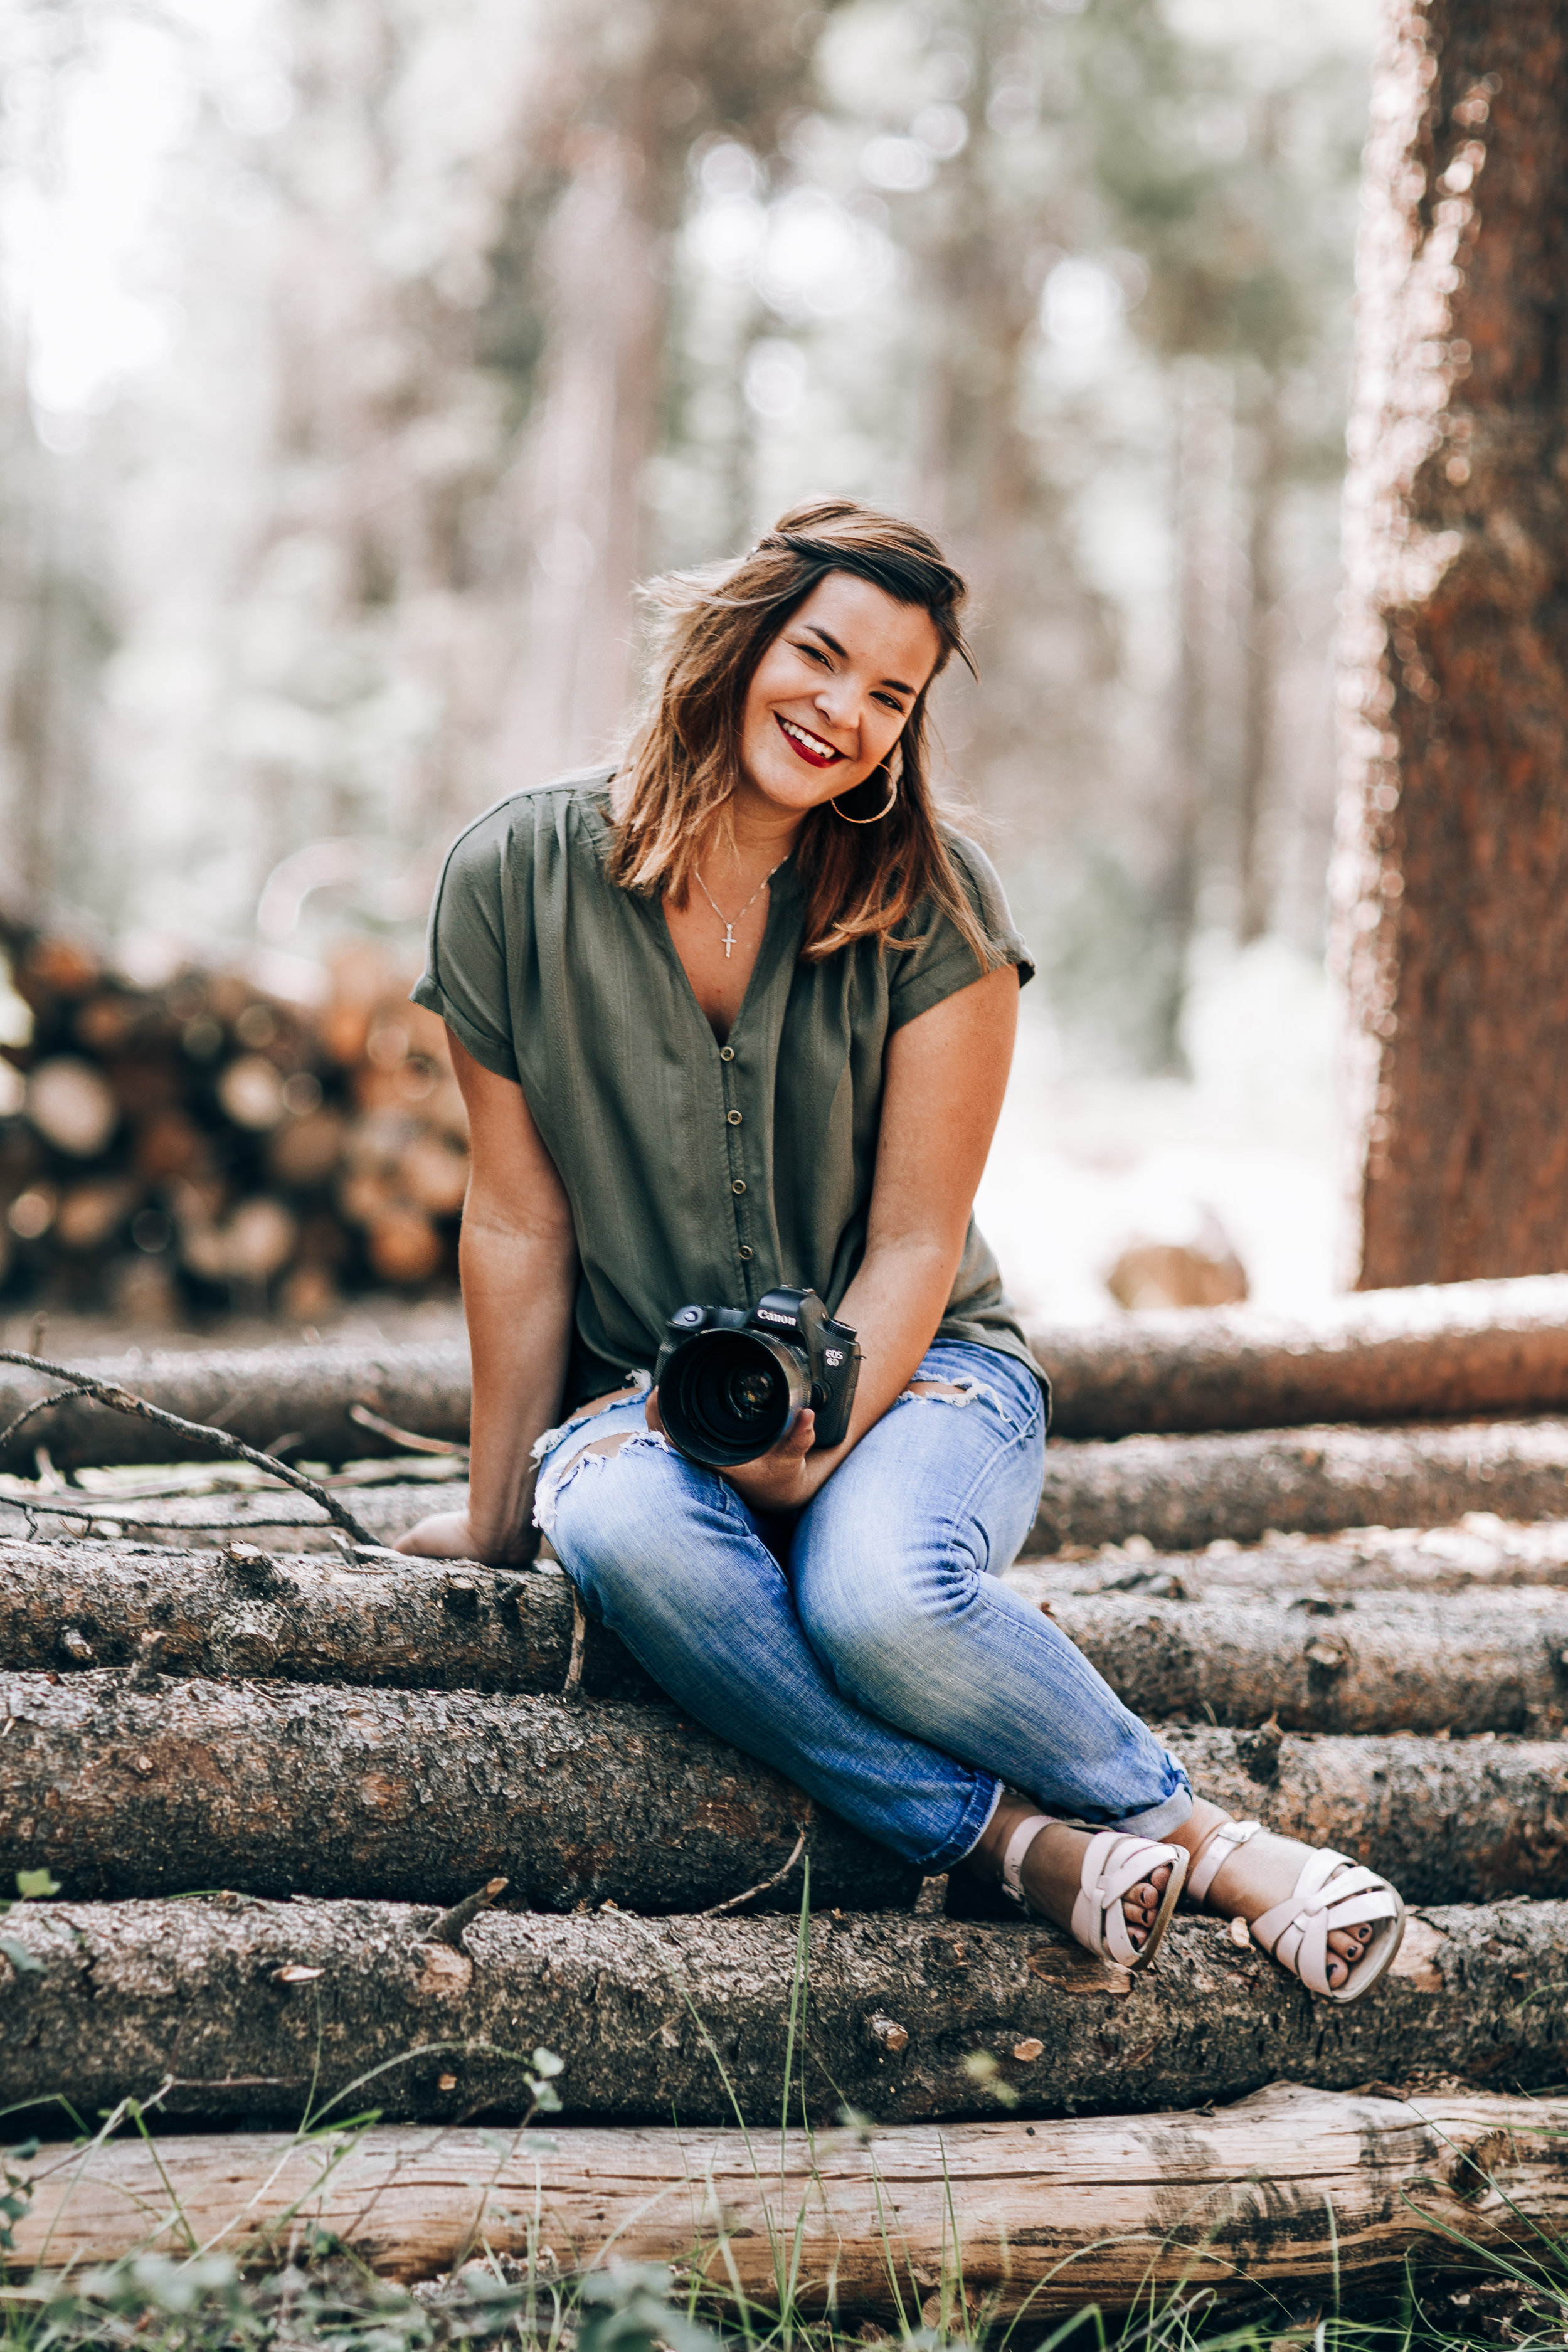 Hey, I'm Christa! - My goal as a photographer is to tell stories through my images. I am so incredibly blessed that I get to travel to beautiful places to capture beautiful people.